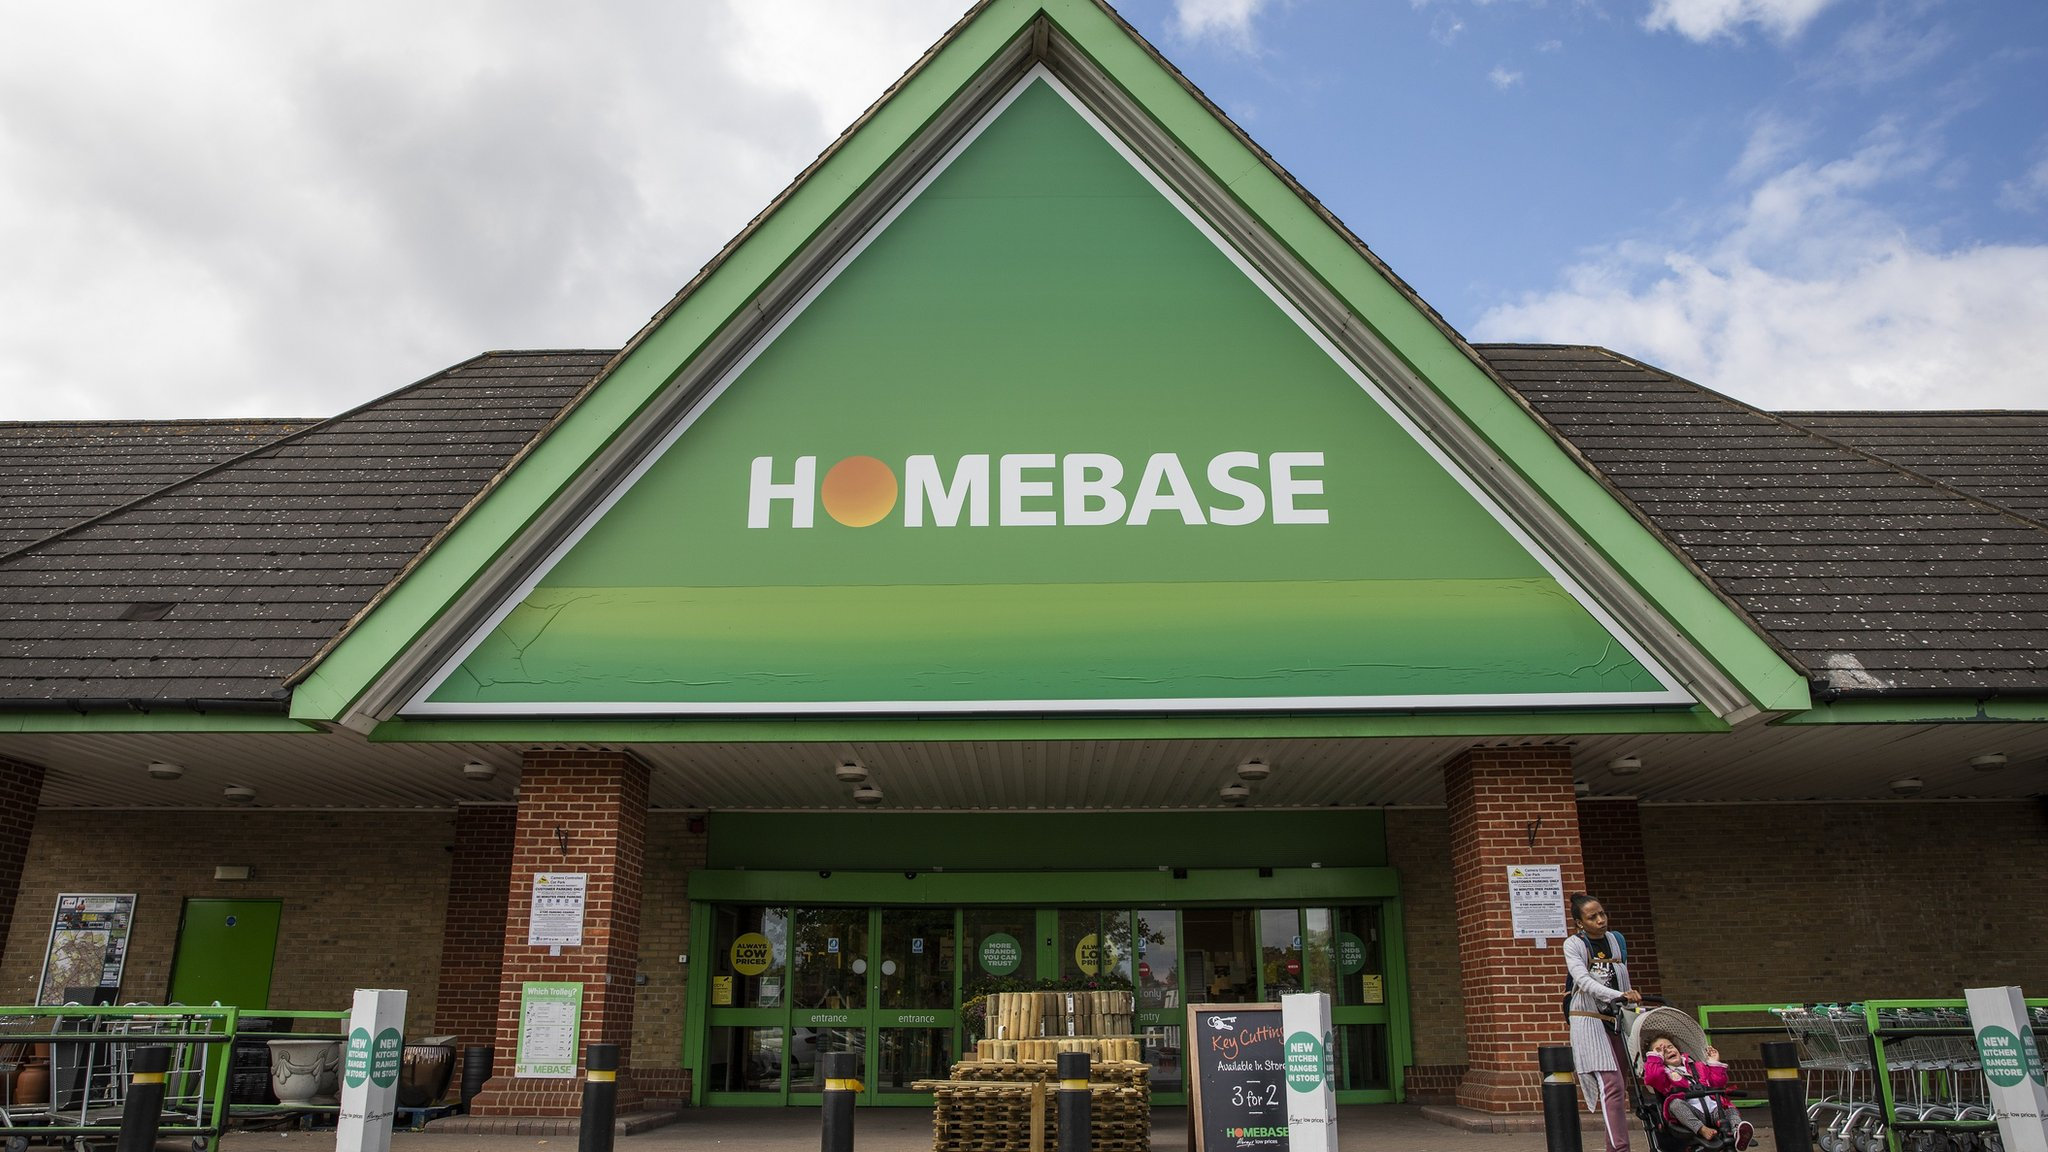 Homebase plans to close 42 stores and cut 1,500 jobs